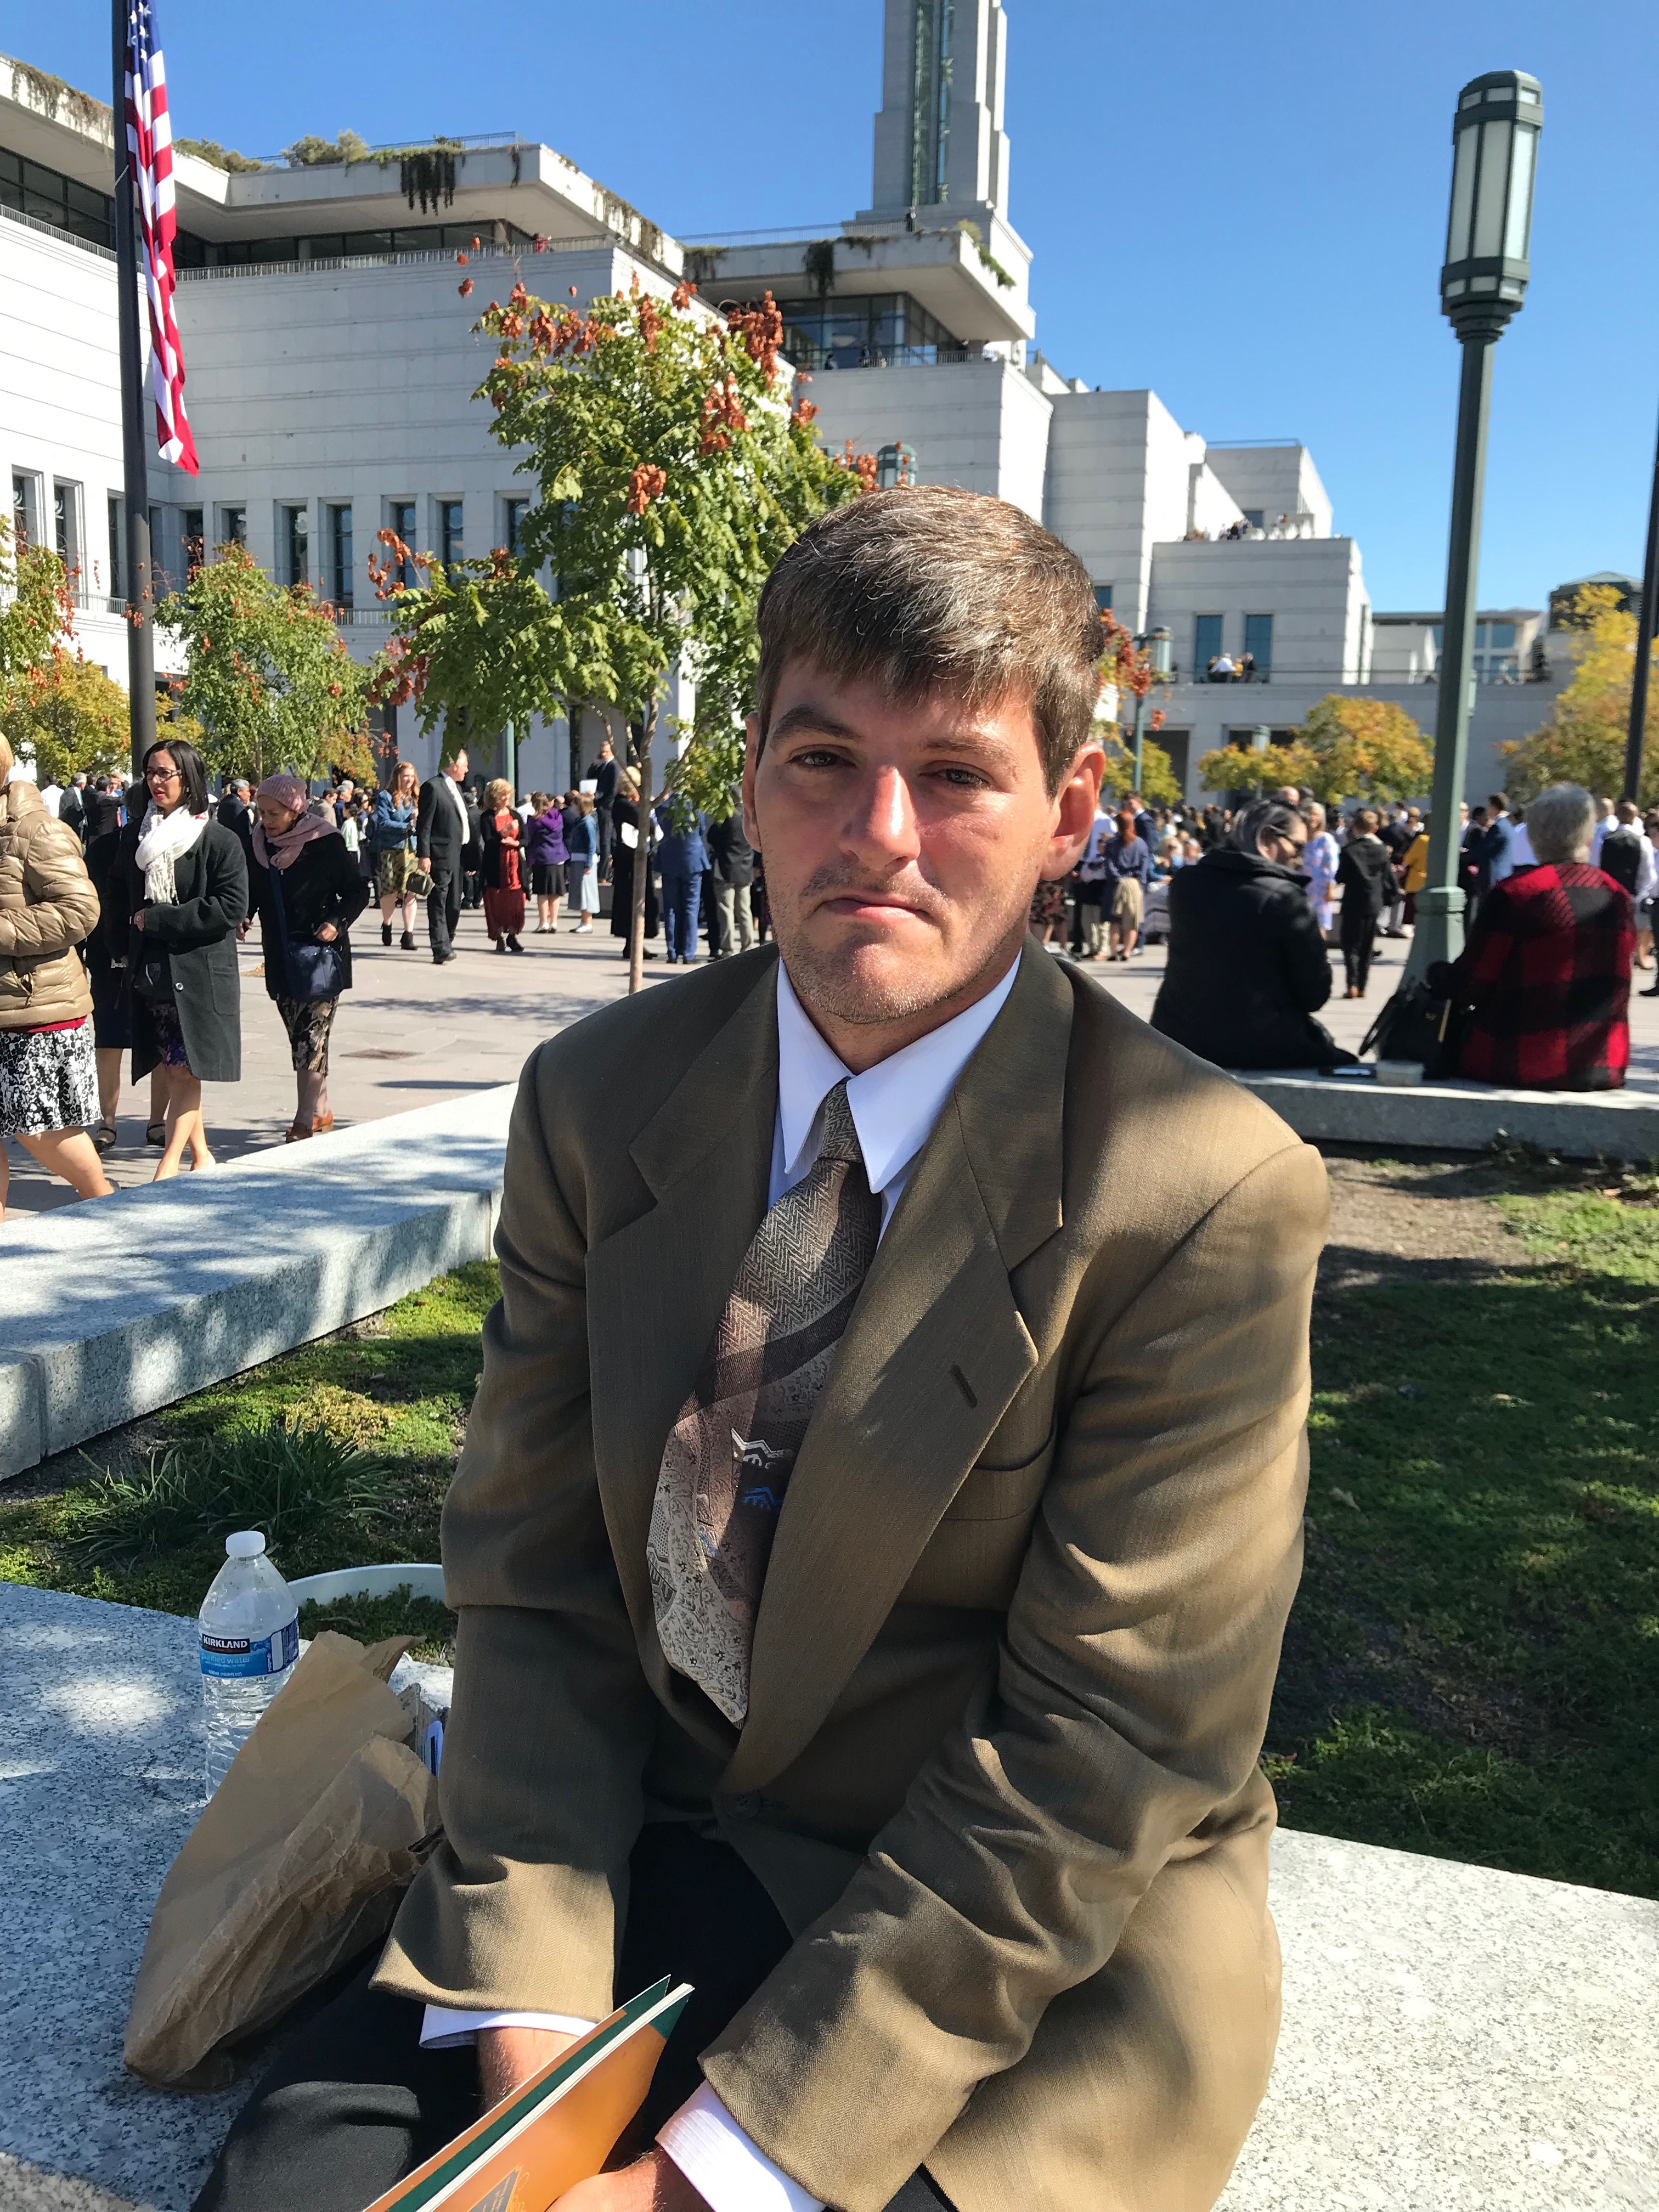 Scott Robinson, from Mississippi, was baptized three years ago and attended general conference for the first time Oct. 5, 2019.